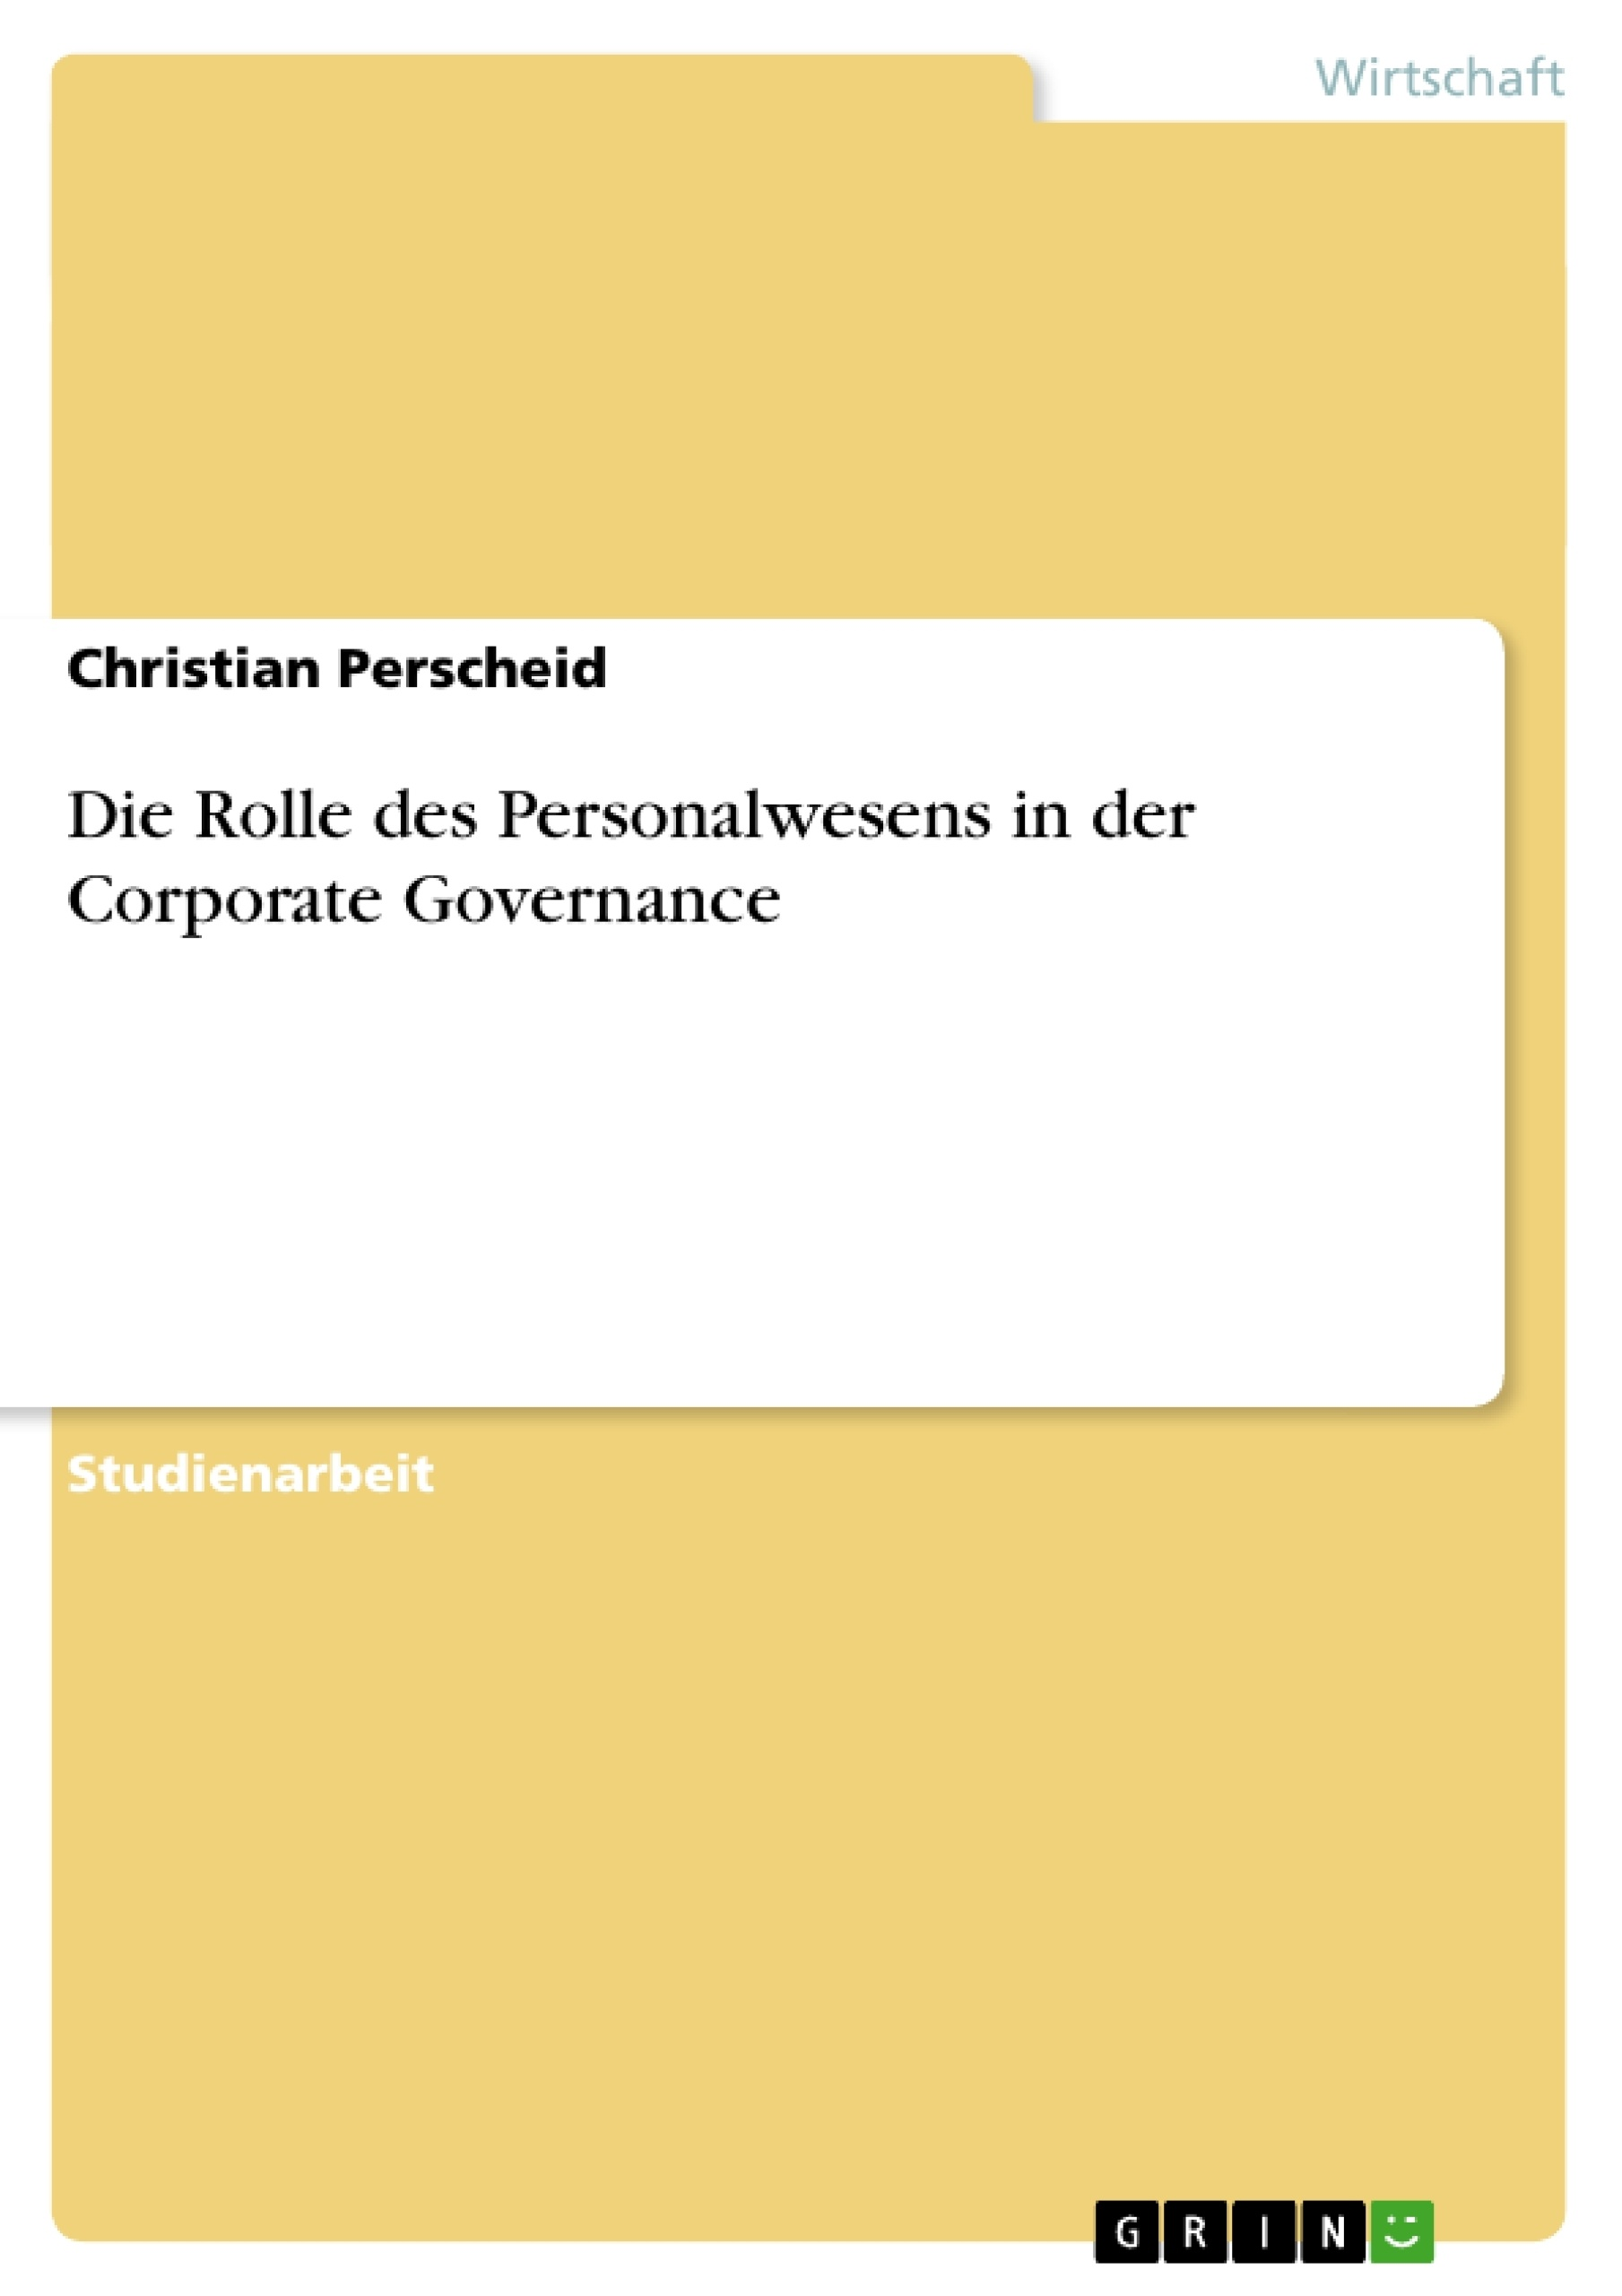 Titel: Die Rolle des Personalwesens in der Corporate Governance